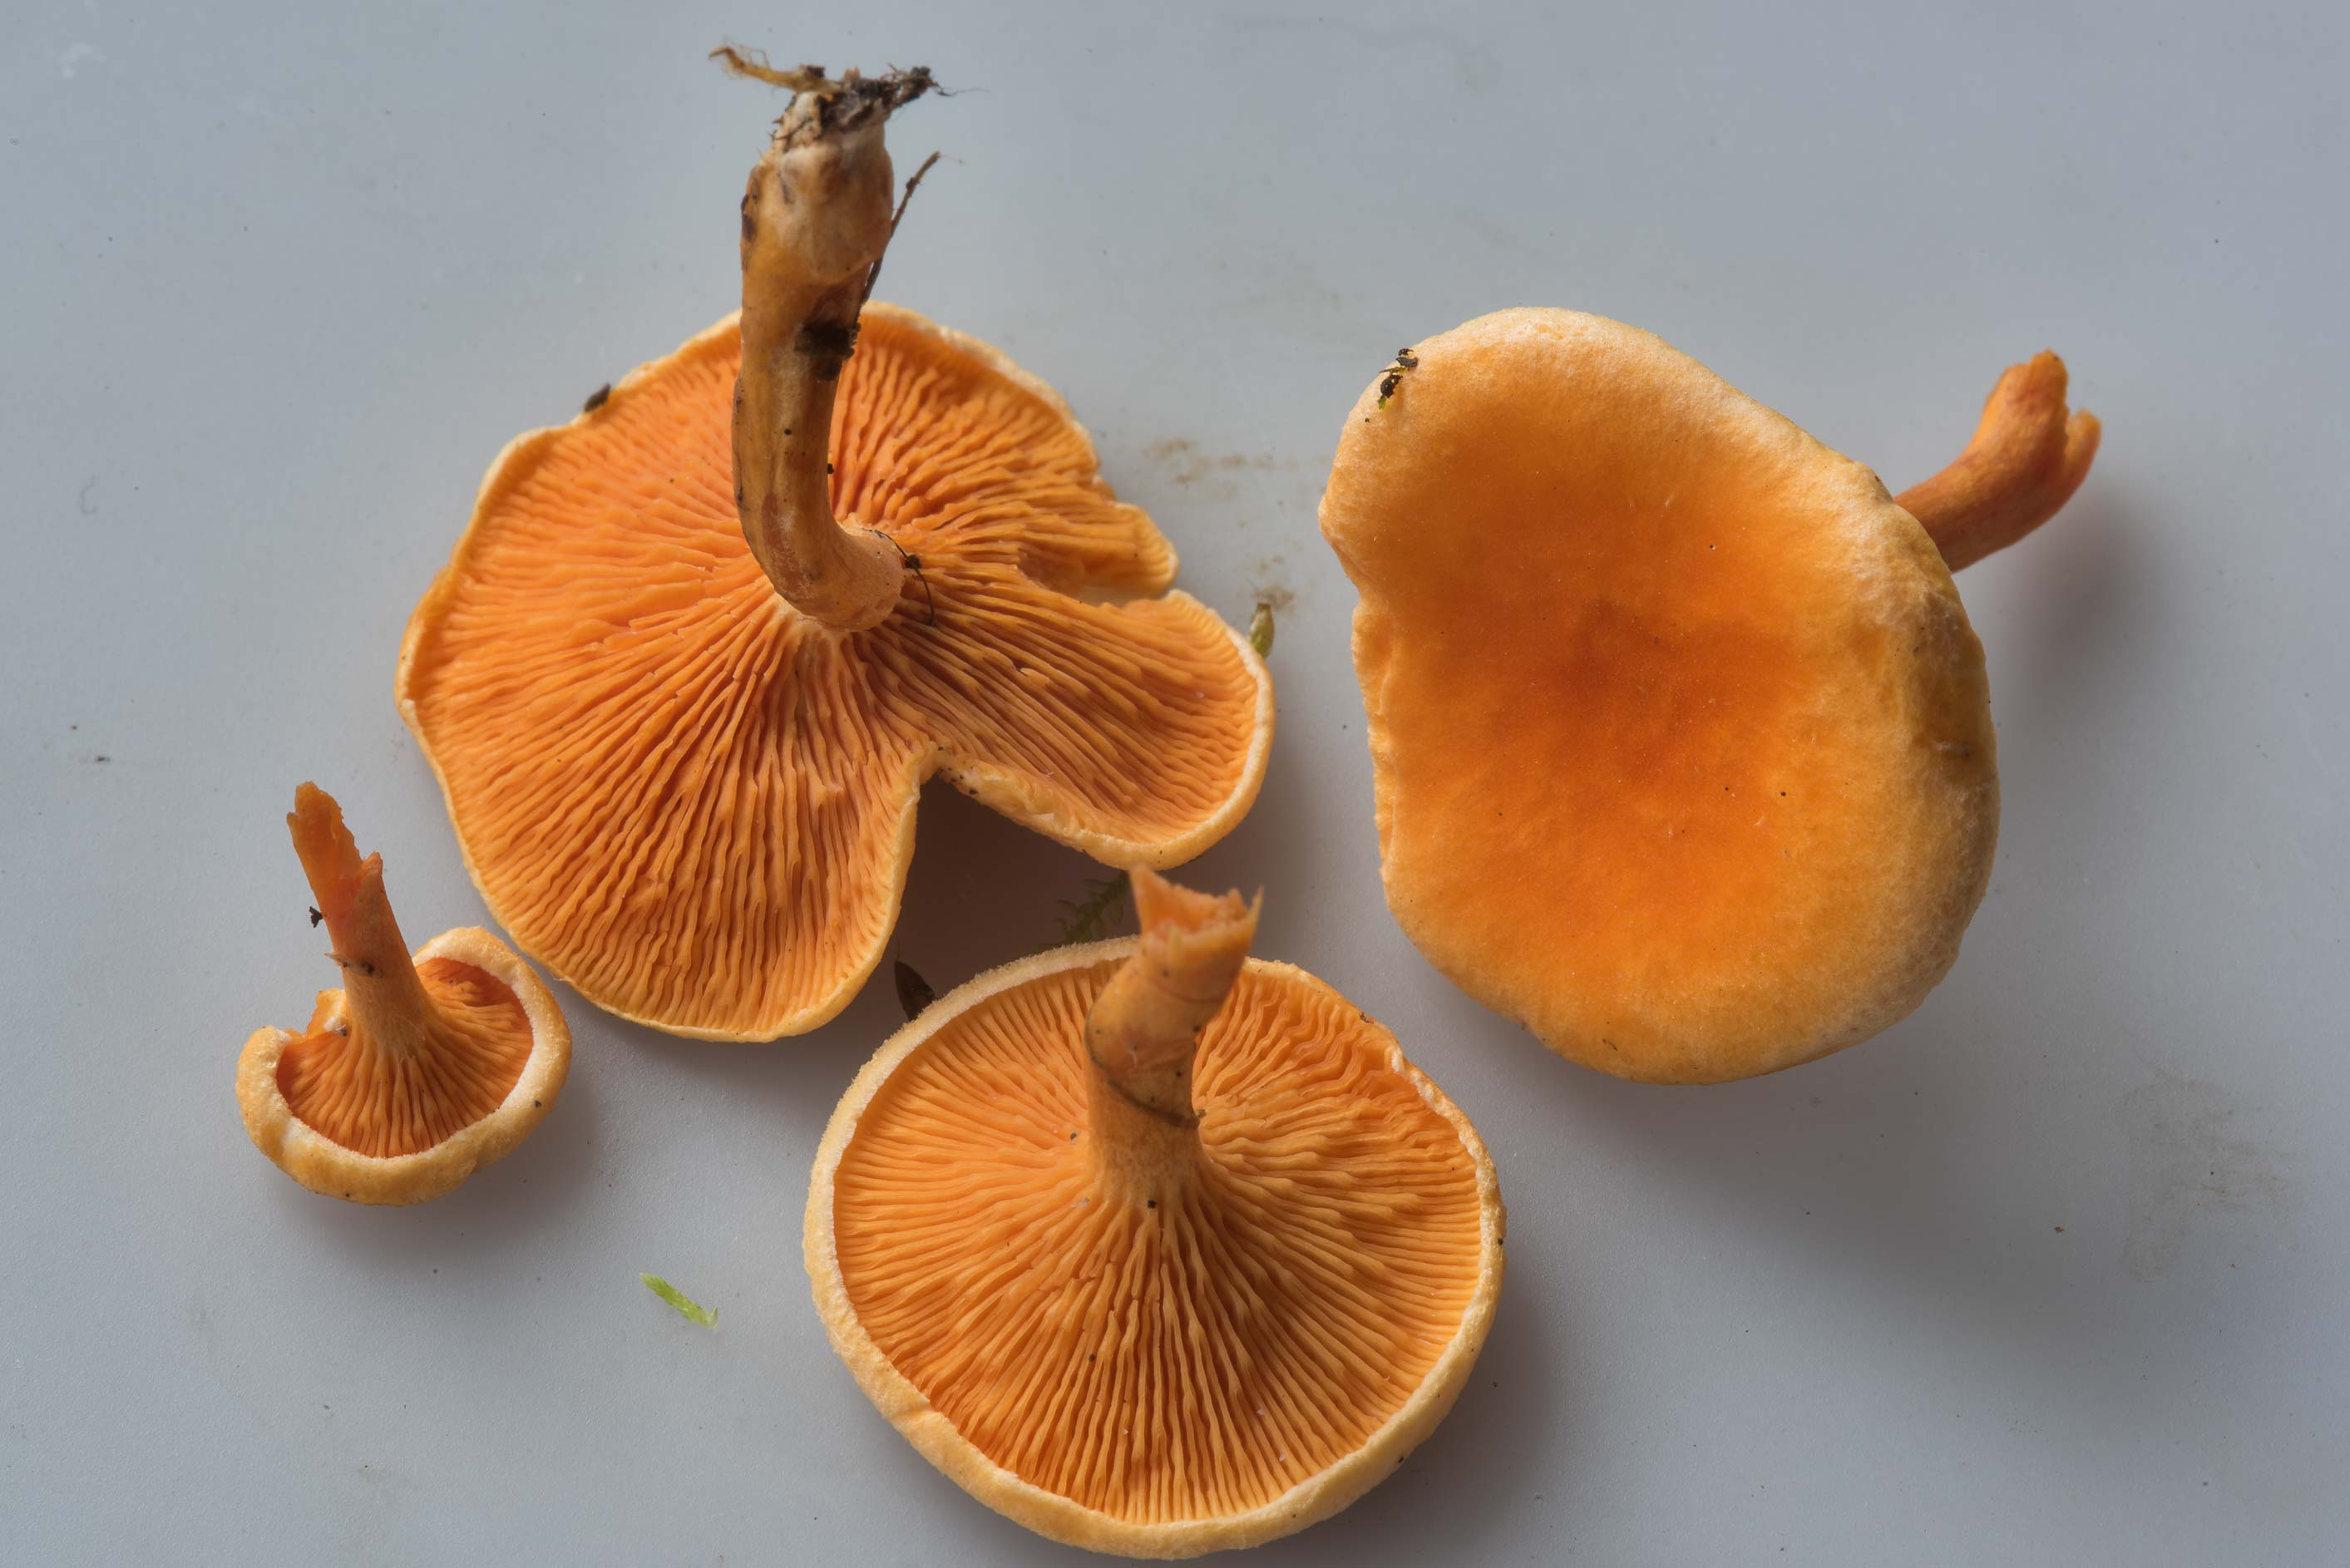 False chanterelle mushrooms (Hygrophoropsis...miles north from St.Petersburg. Russia